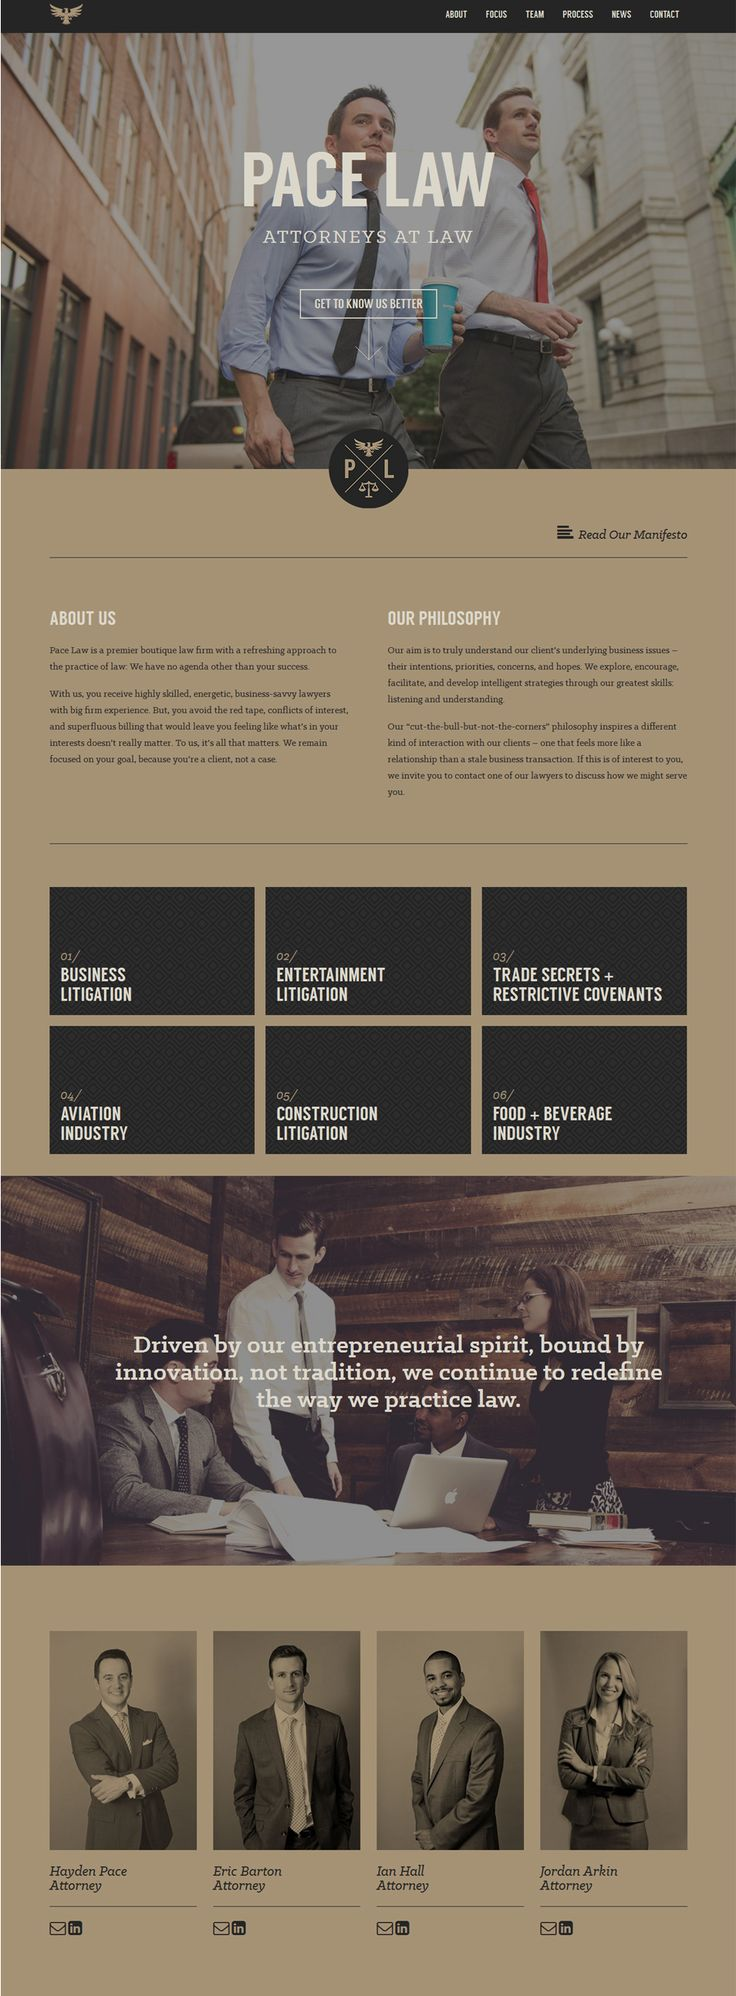 Pace Law | Beautiful website design. I love the color scheme - it coveys a sense of casual and comfortable service as well as a professional approach.